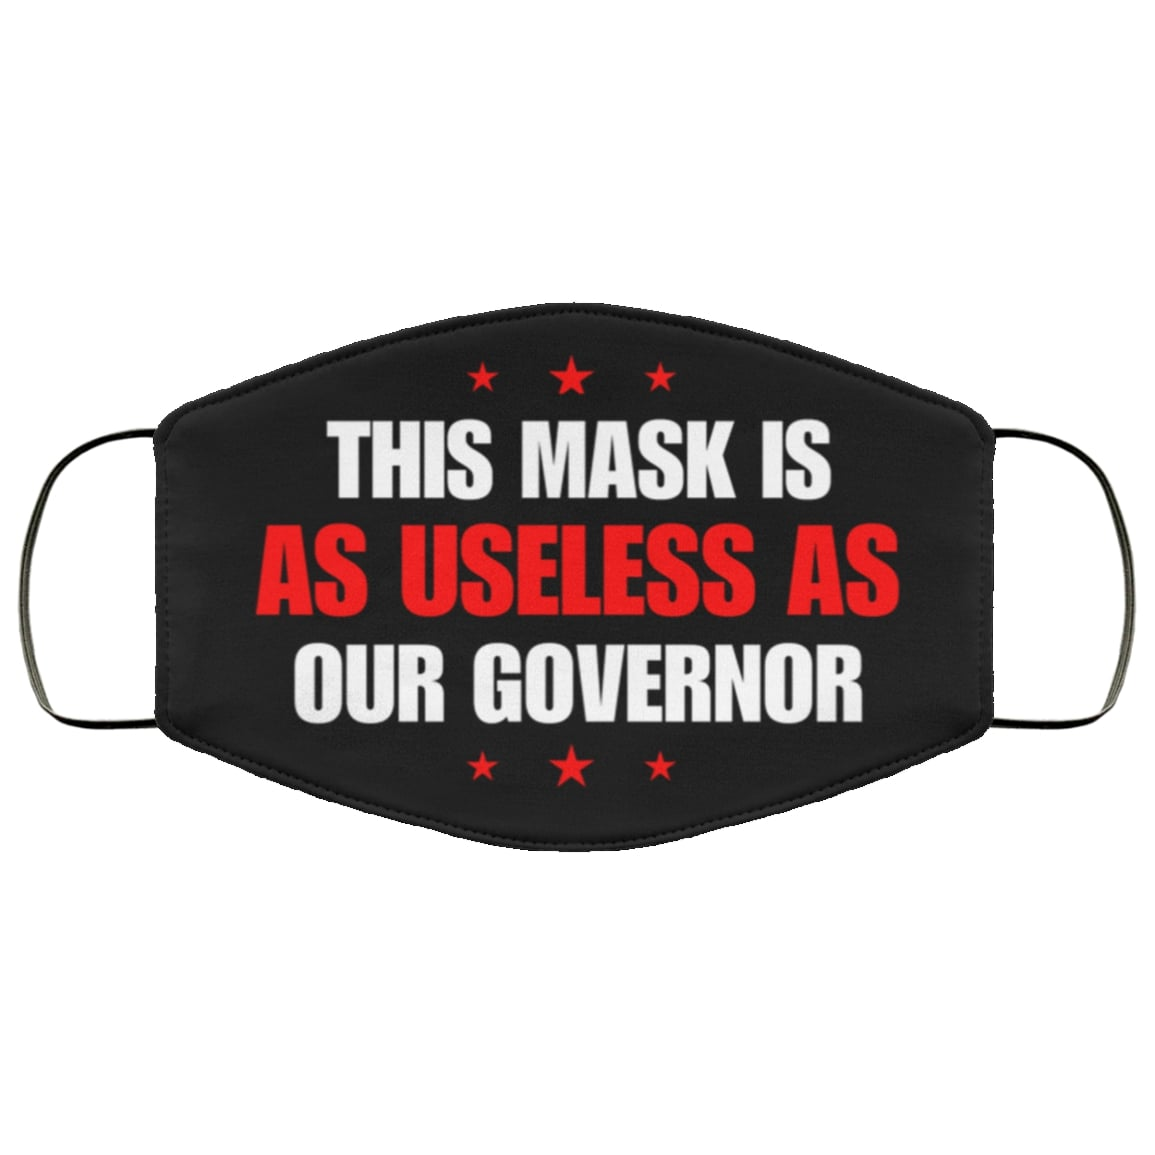 This mask is as useless as our governor full over printed face mask 3